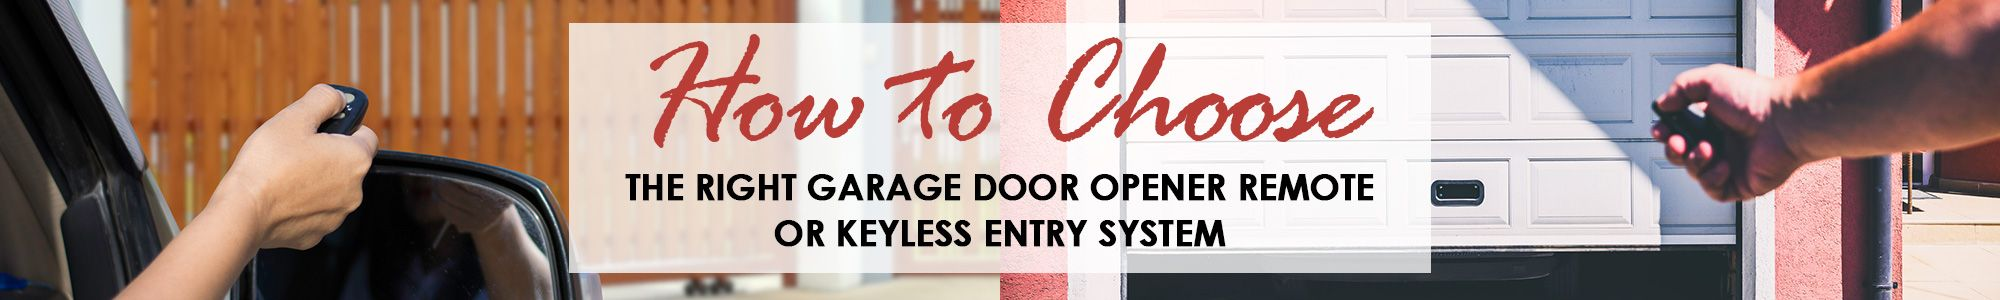 How to Choose the Right Garage Door Opener Remote or Keyless Entry System